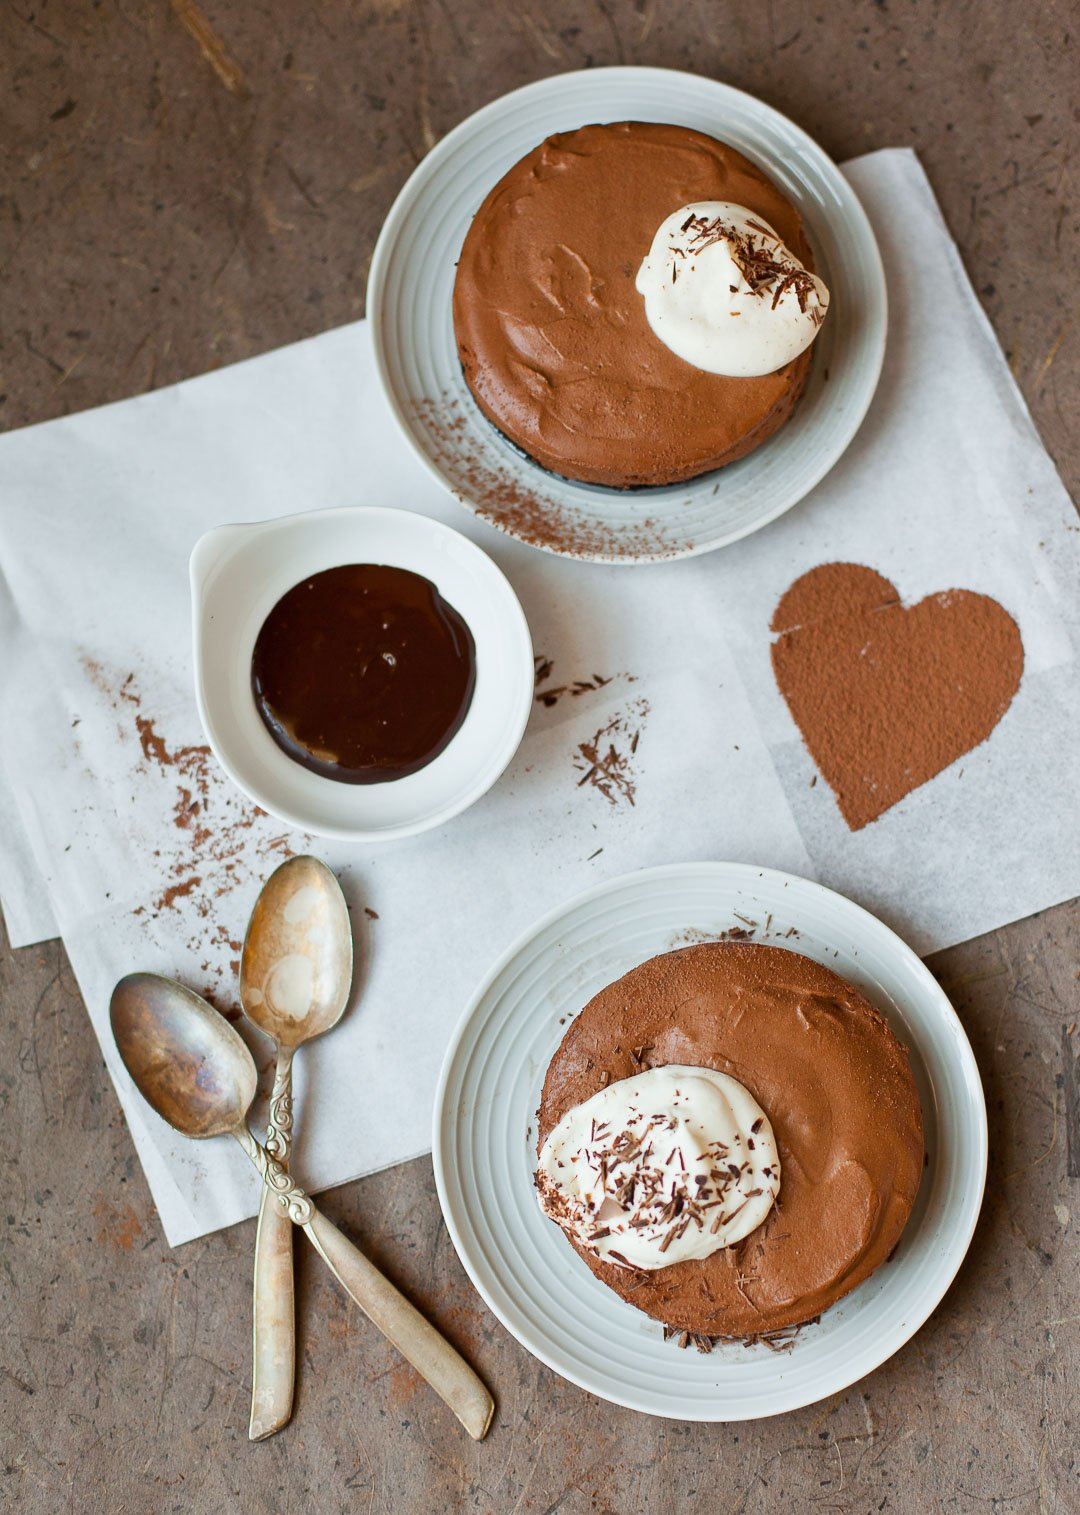 Two plates with spoons holding creamy frozen chocolate semifreddo dessert, topped with soft whipped cream and chocolate shavings.